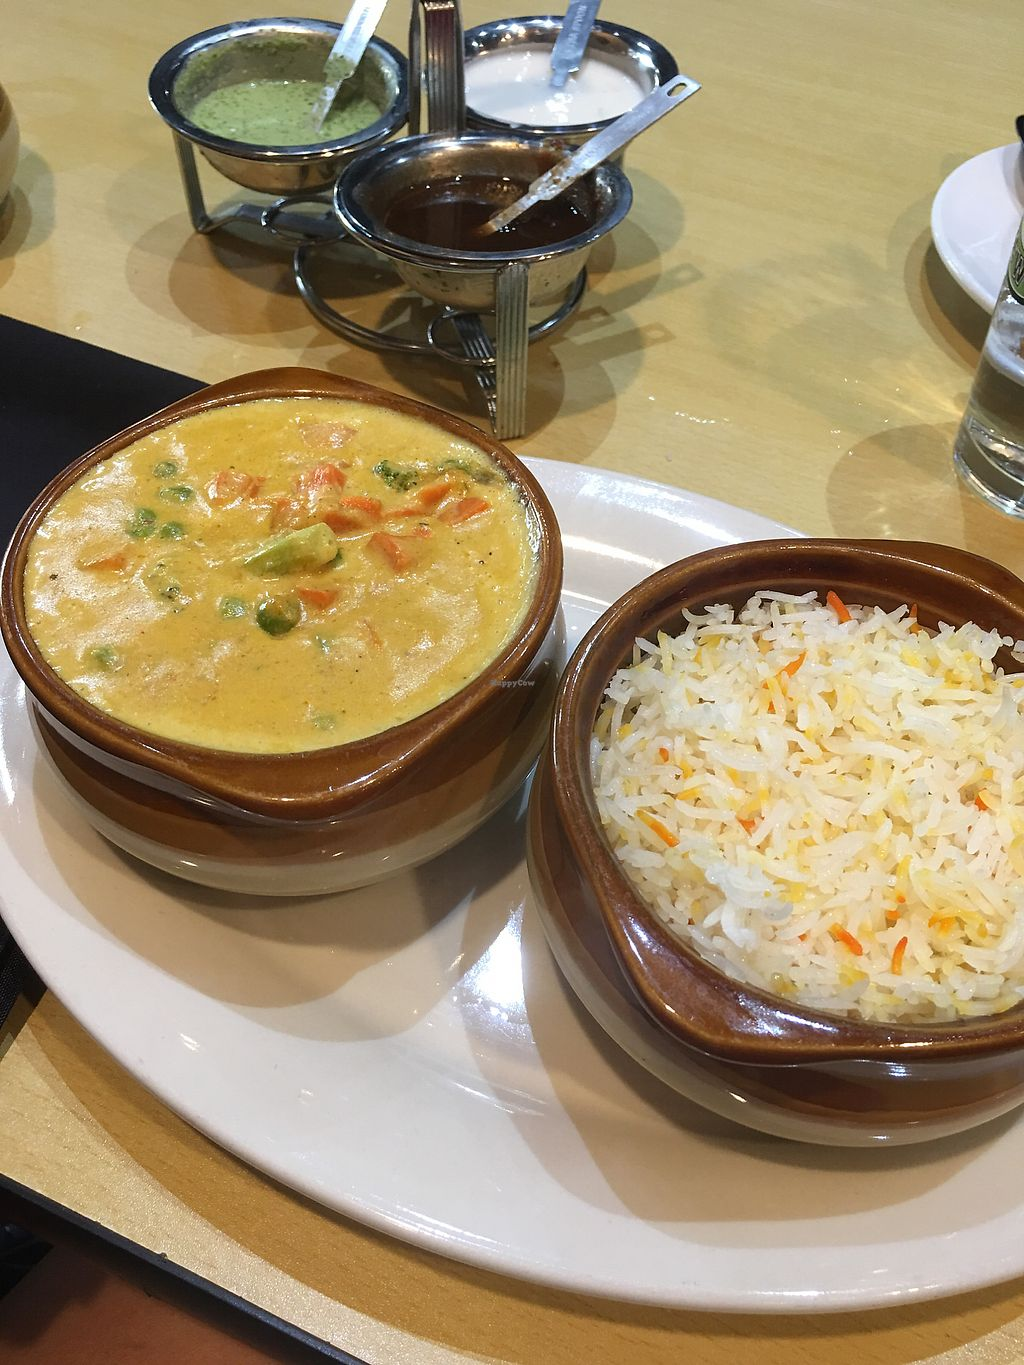 "Photo of Spice Club Indian Grill  by <a href=""/members/profile/NatashaJason"">NatashaJason</a> <br/>Veggie Koorma... so good! (vegan) <br/> July 8, 2017  - <a href='/contact/abuse/image/89917/278013'>Report</a>"